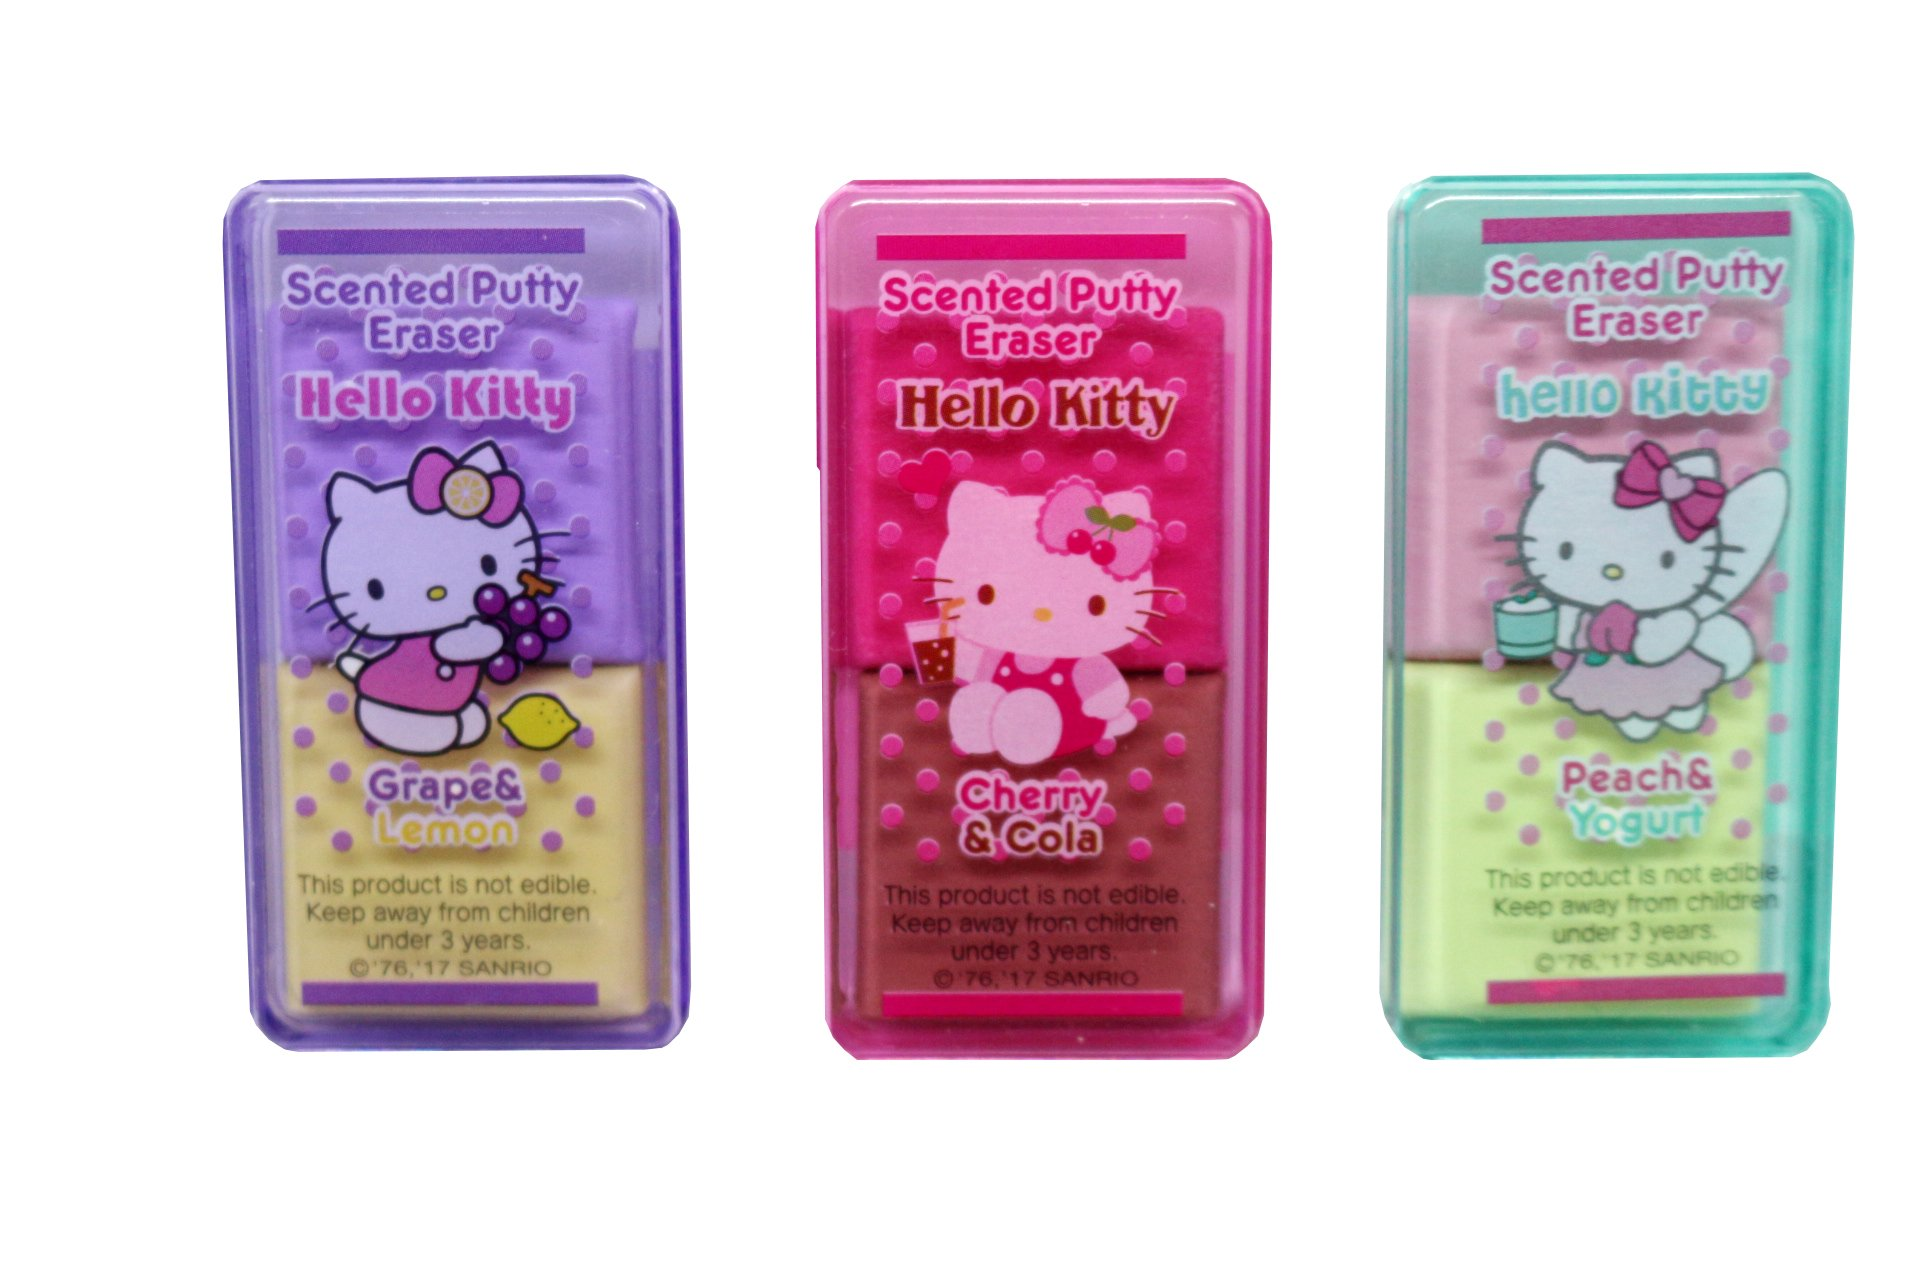 Hello Kitty Sanrio New Scented Colorful Putty Eraser Set of 3 Different Fragrances. (Juicy flavors 1) by SANRIO (Image #2)